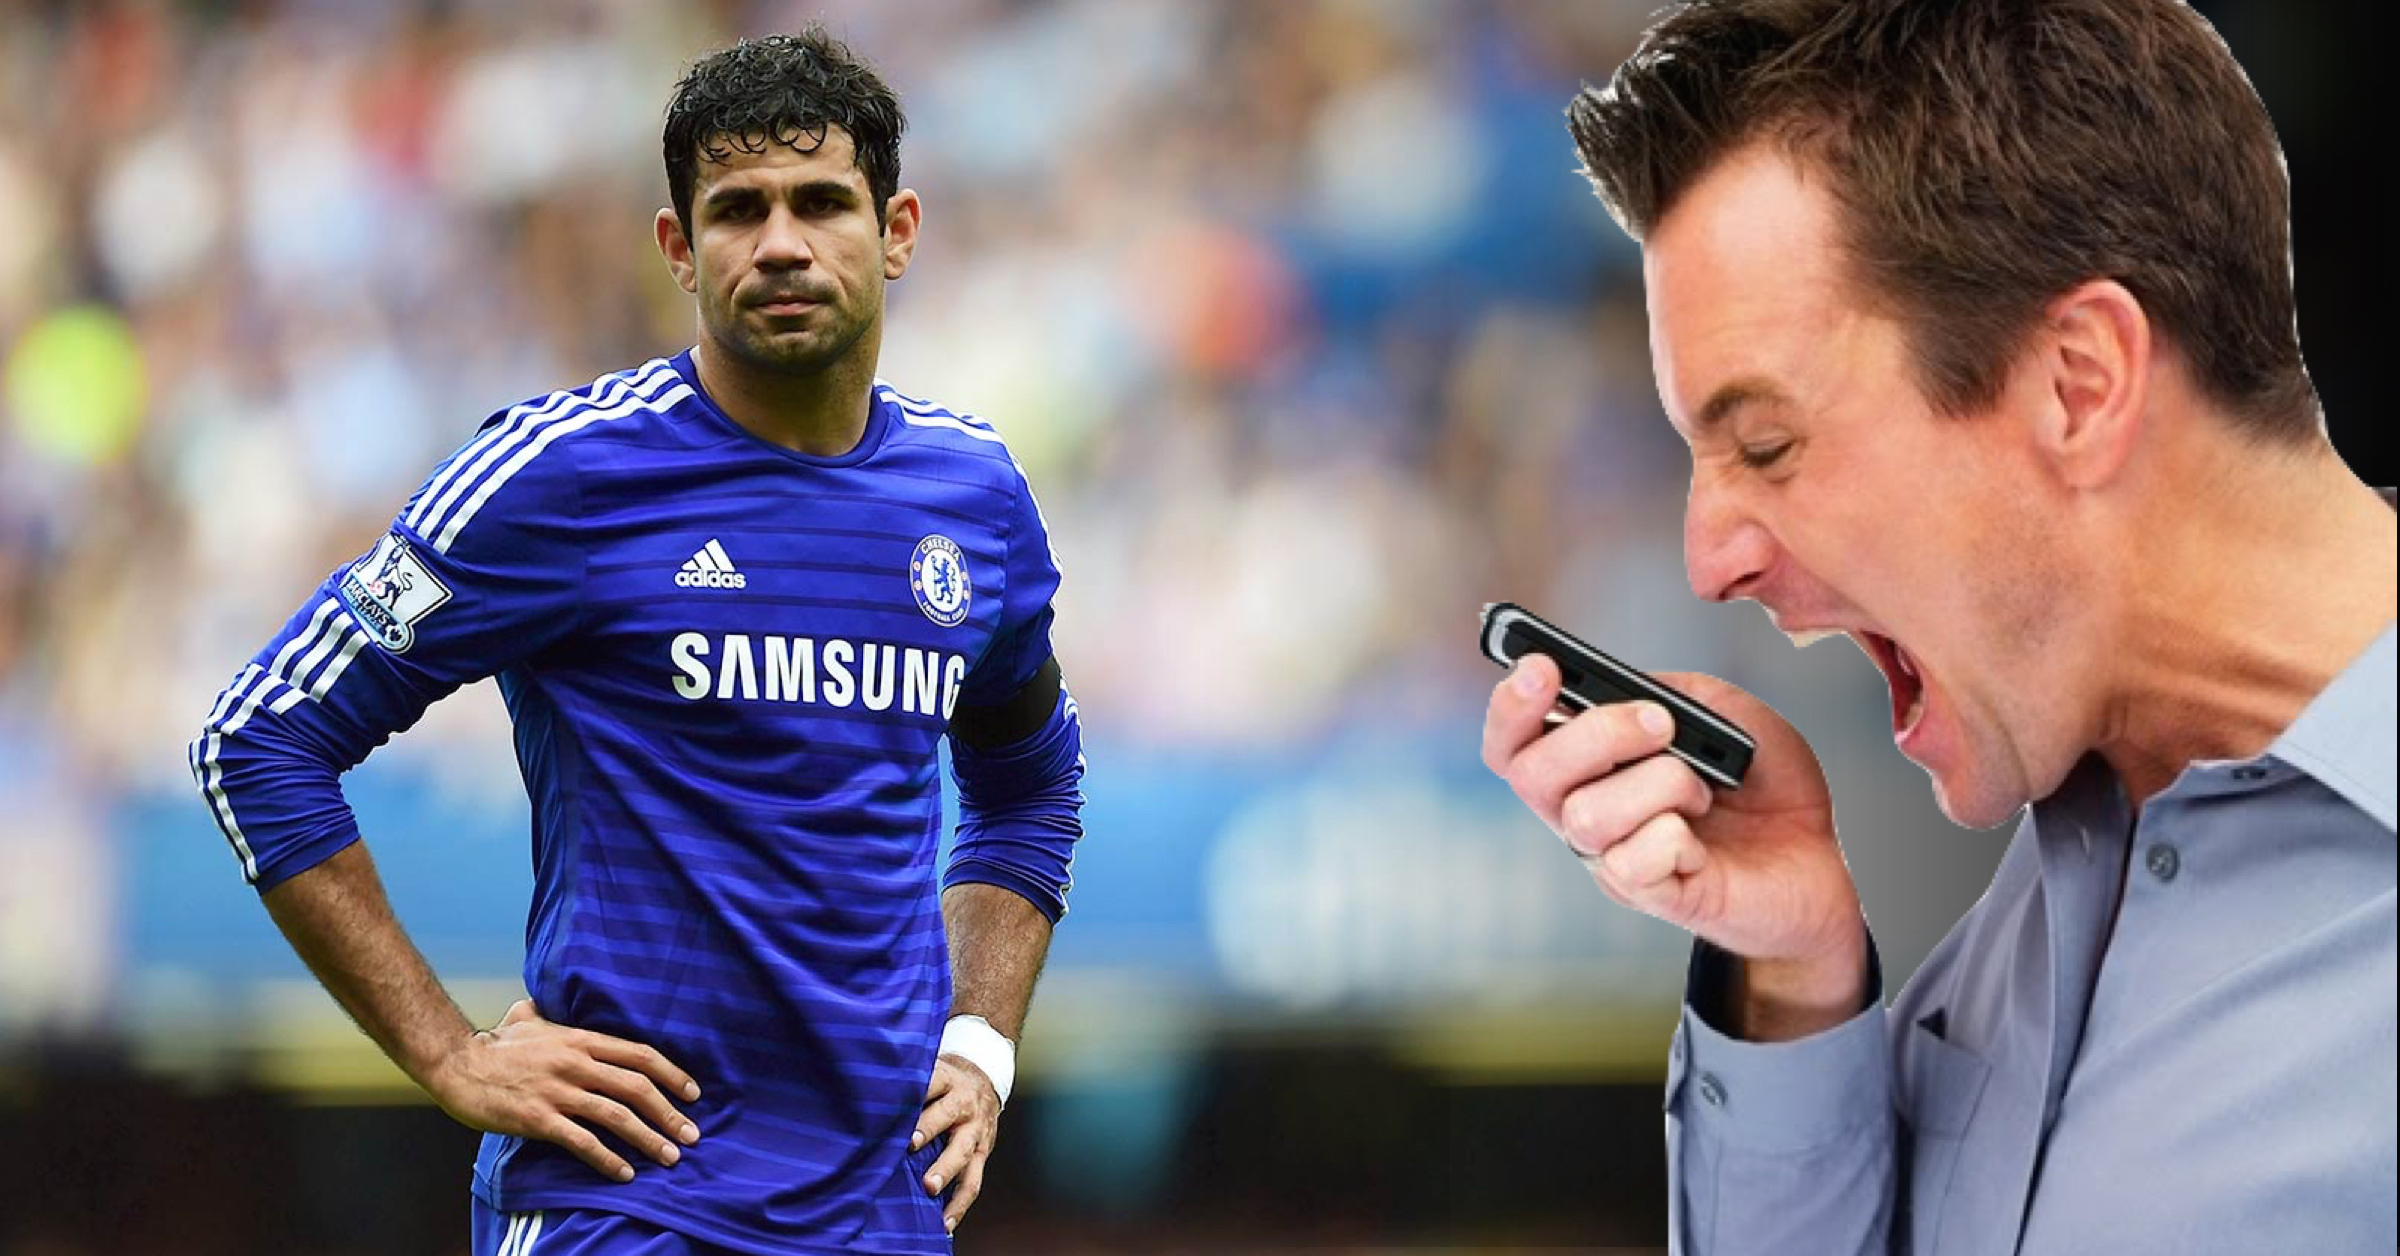 AUDIO: Chelsea Fan Goes To Town On Diego Costa In Furious Talk Show Tirade